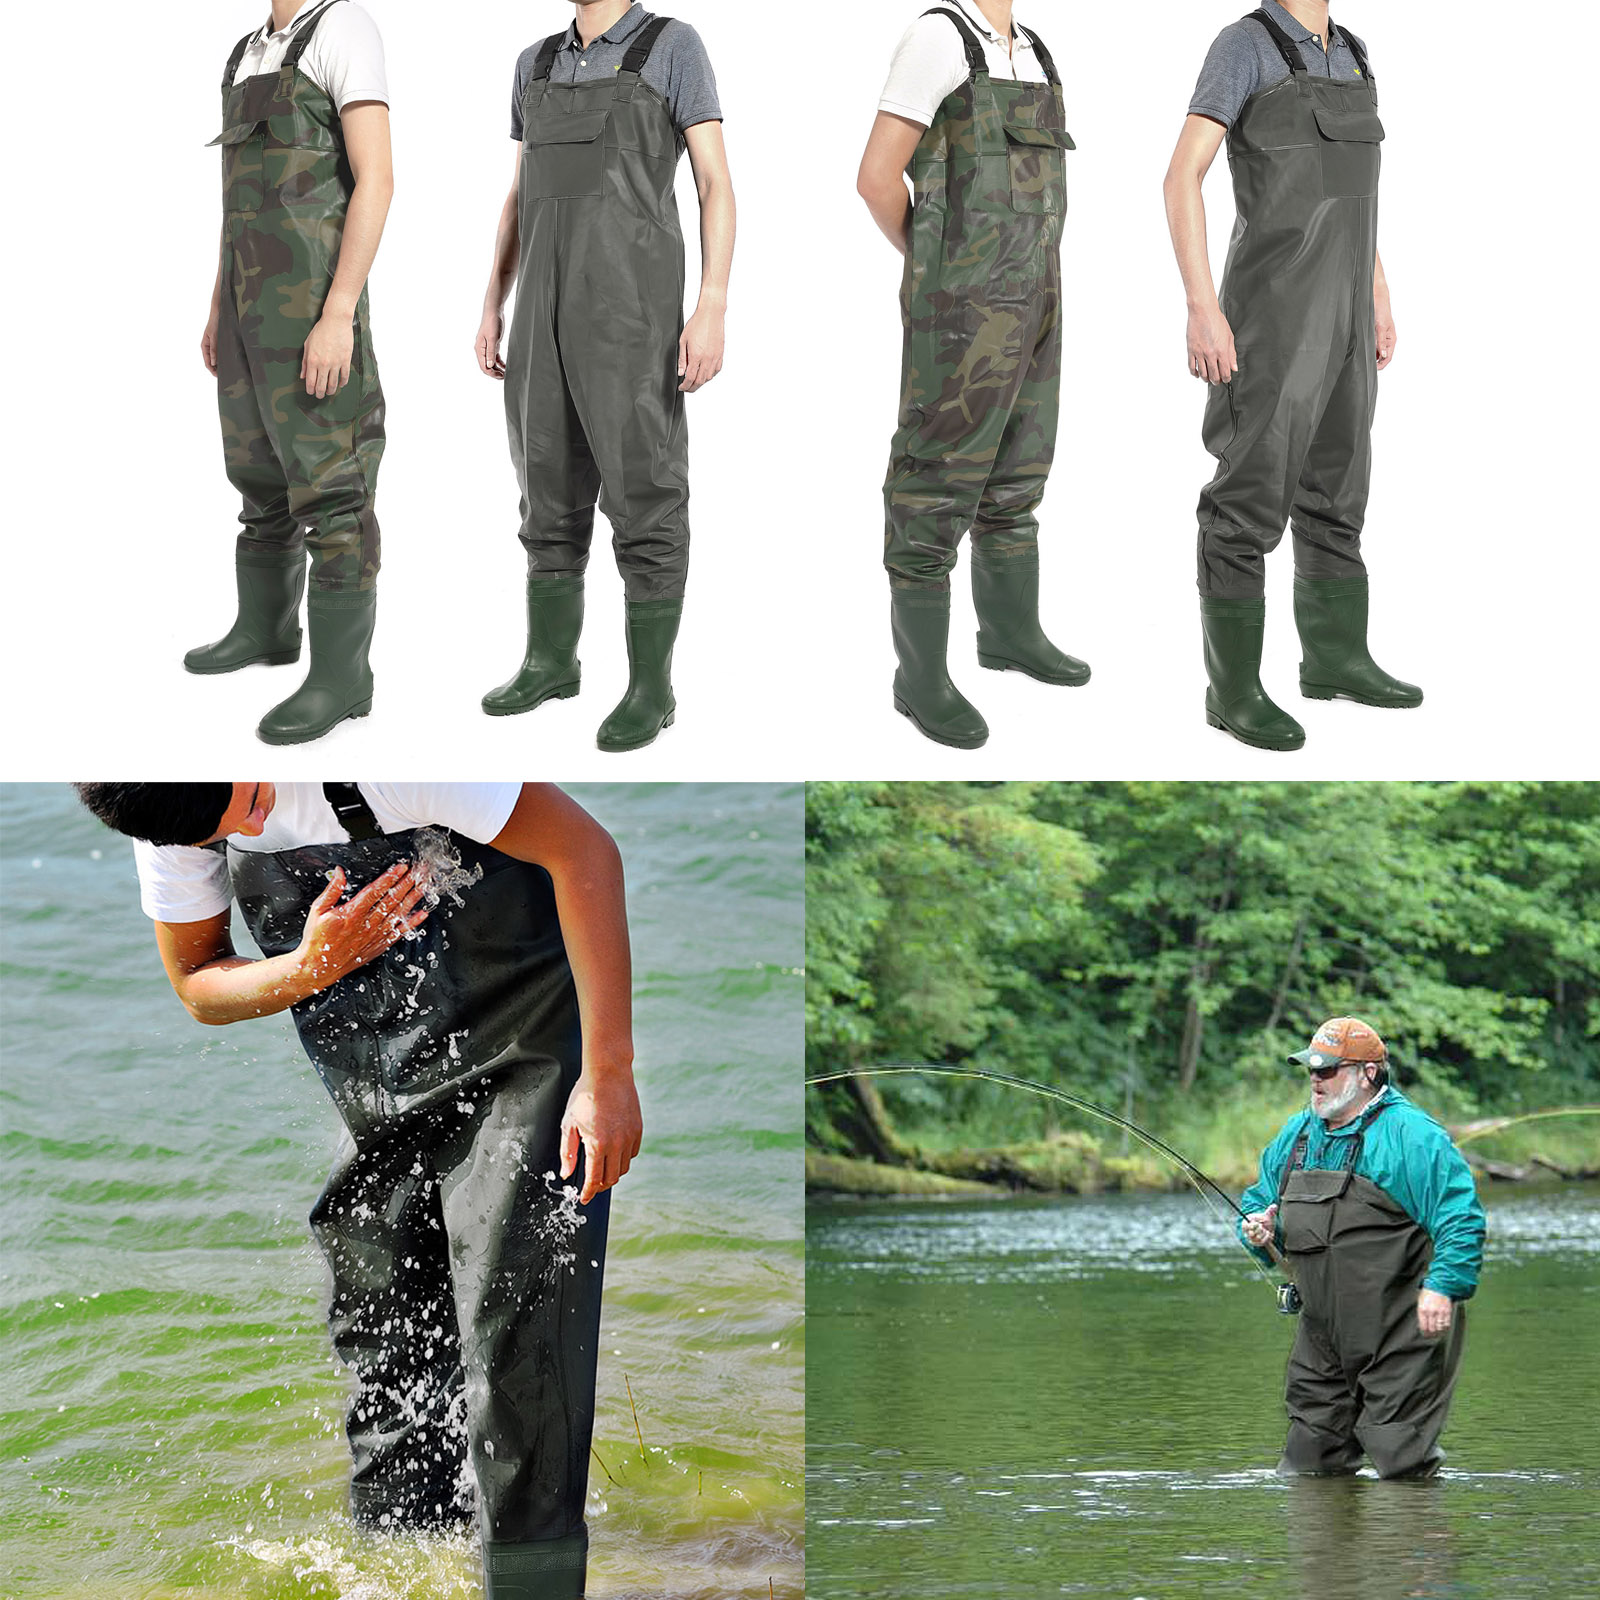 New chest waders waterproof fishing hunting boot foot for Chest waders for fishing